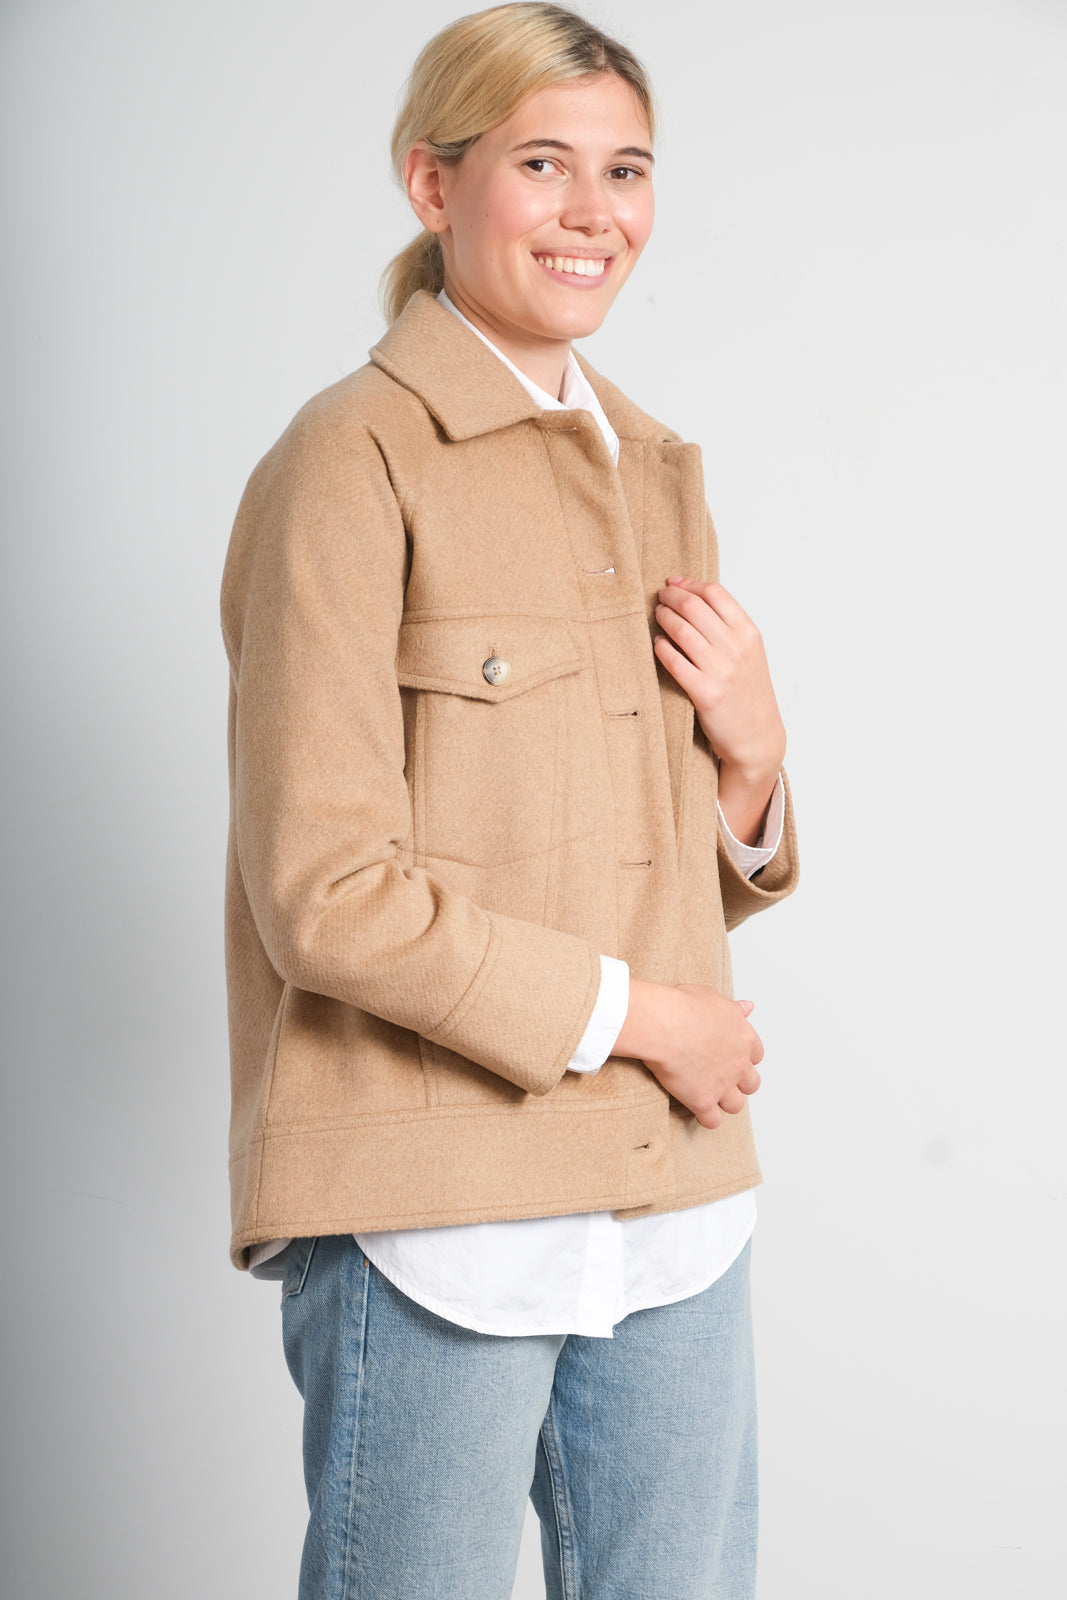 SLF Maddy wool jacket in tigers eye